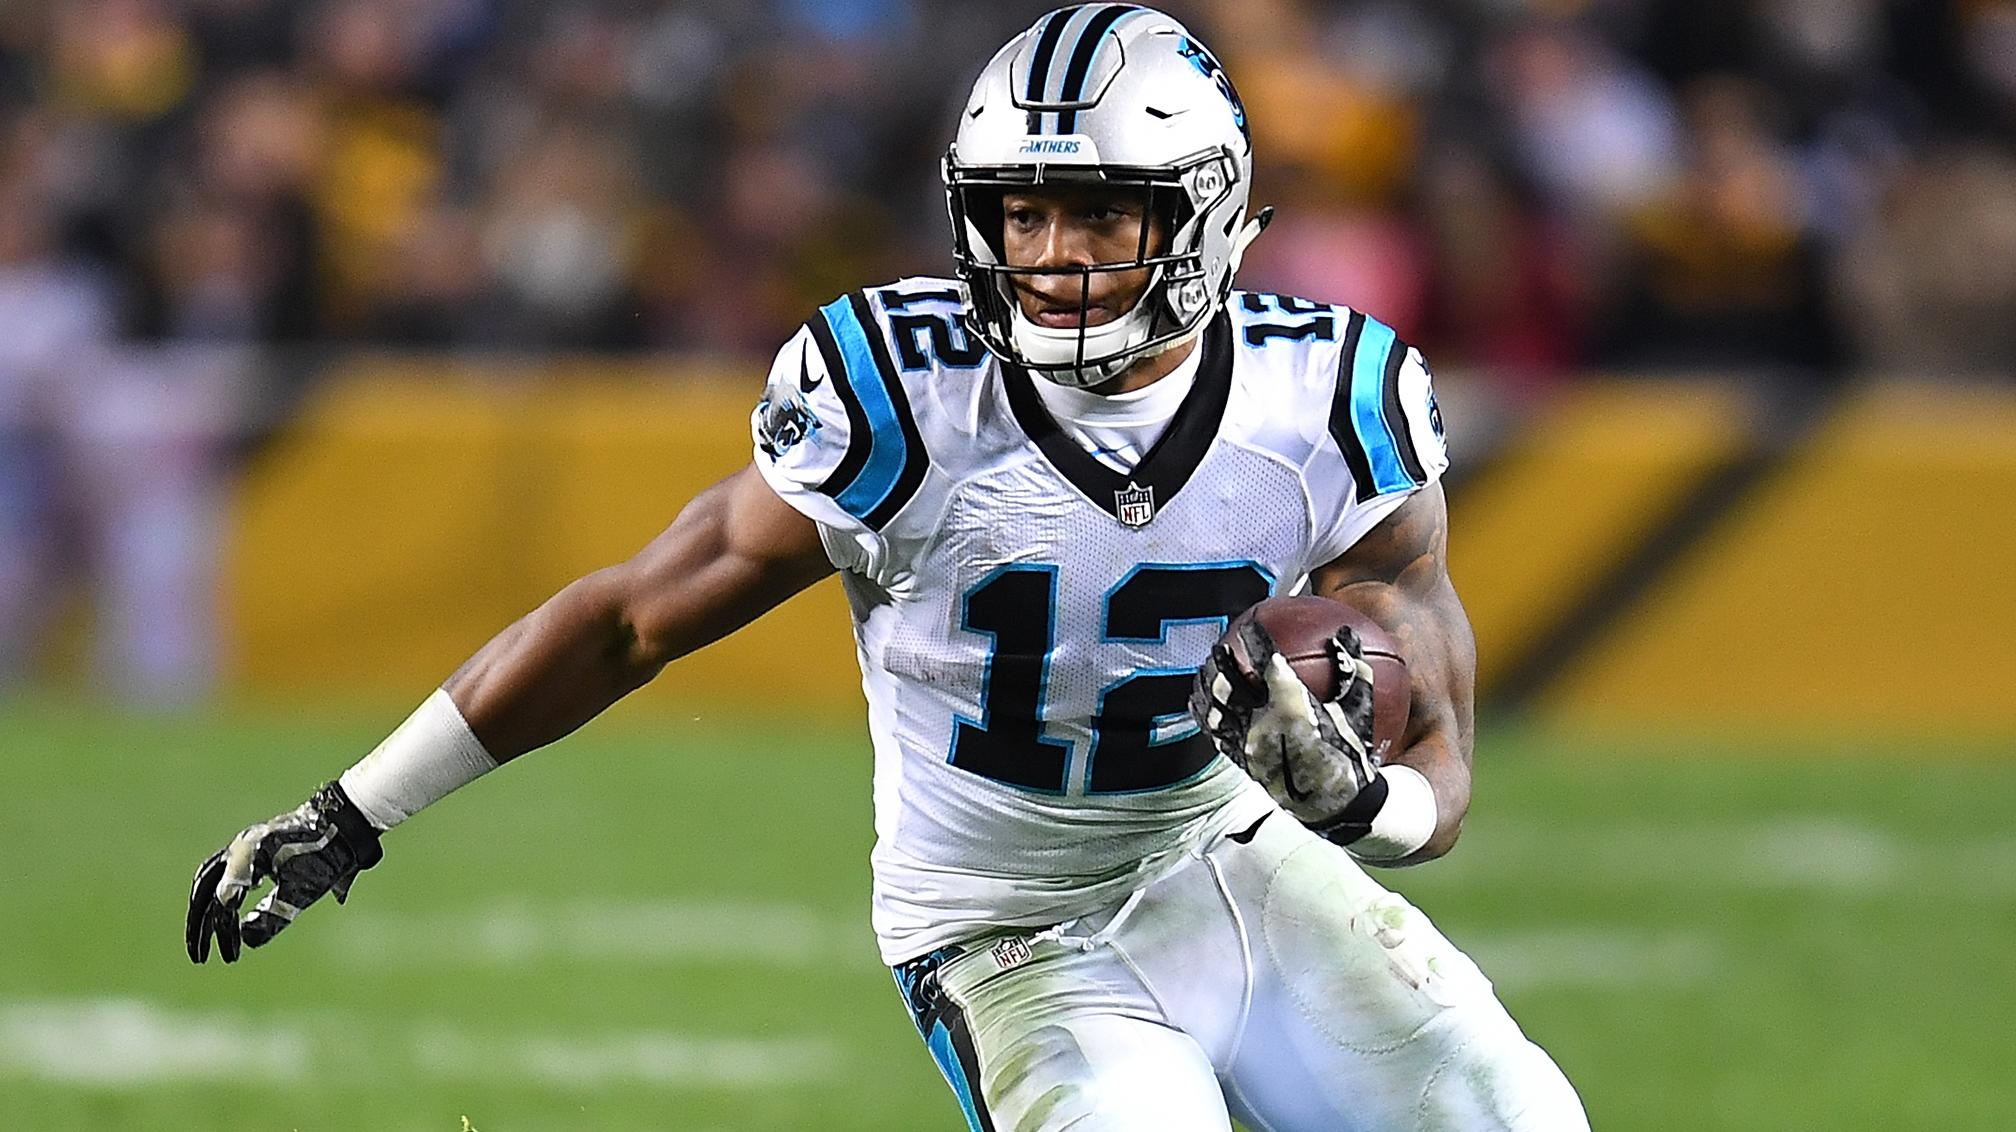 Can D.J. Moore continue to thrive with Teddy?